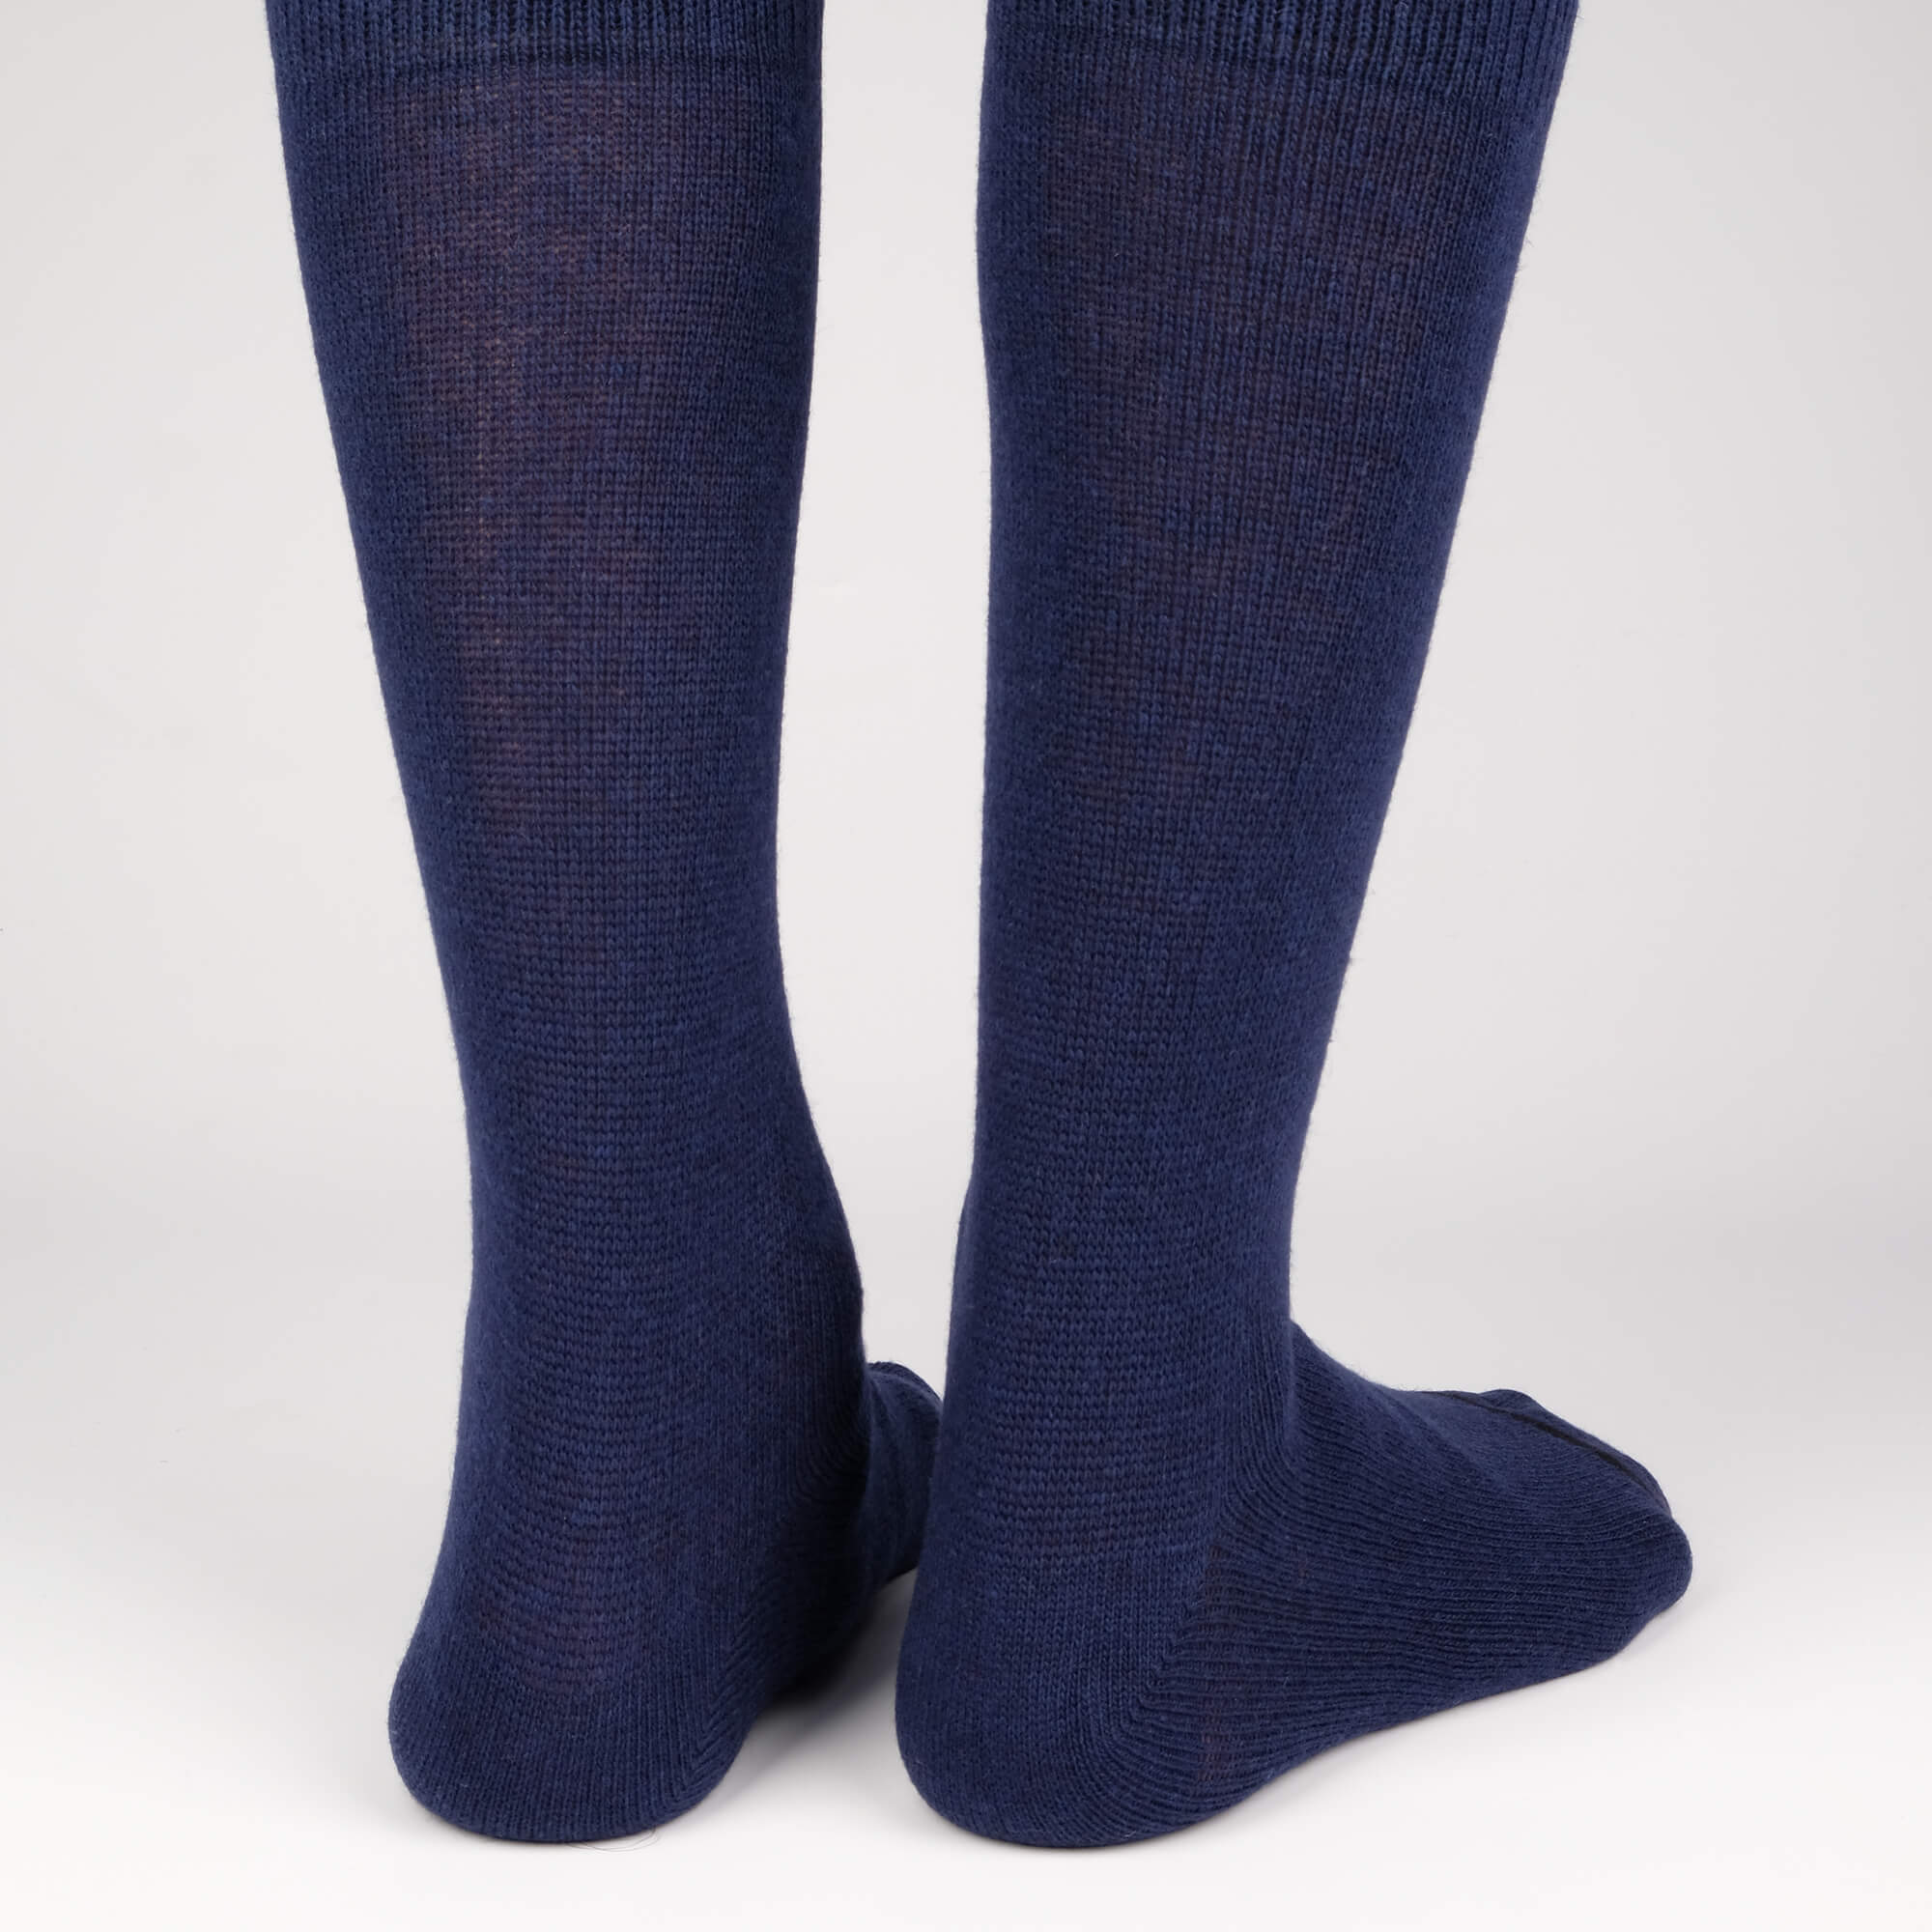 Mens Socks - Cashmere x Merino Men's Socks - Blue⎪Etiquette Clothiers